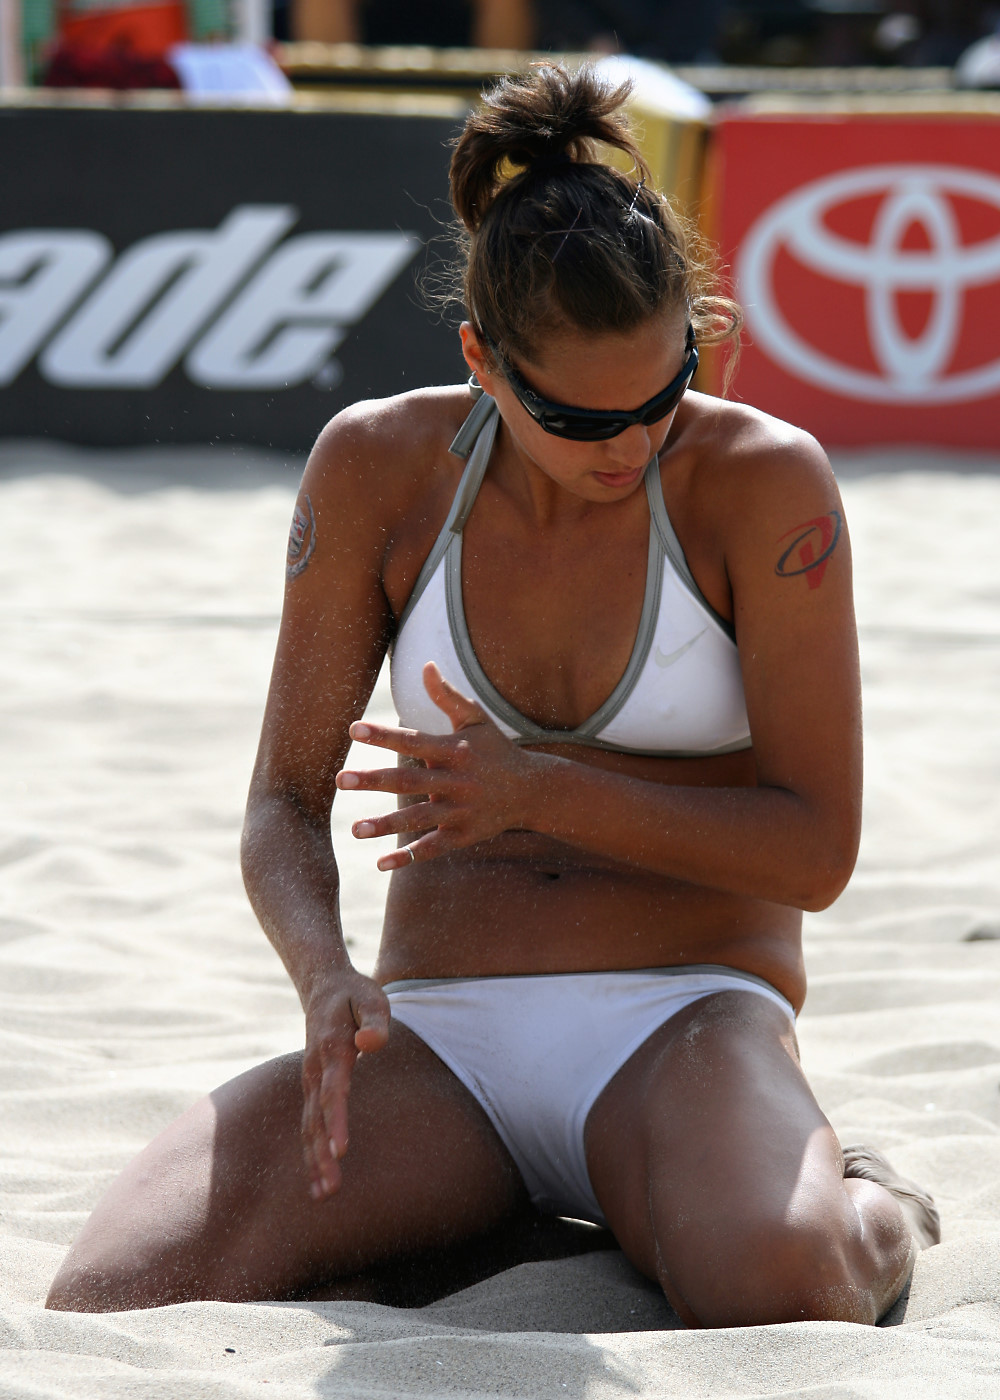 Girls-Portal123Blogspotcom Beach Volleyball Women Hot-3932